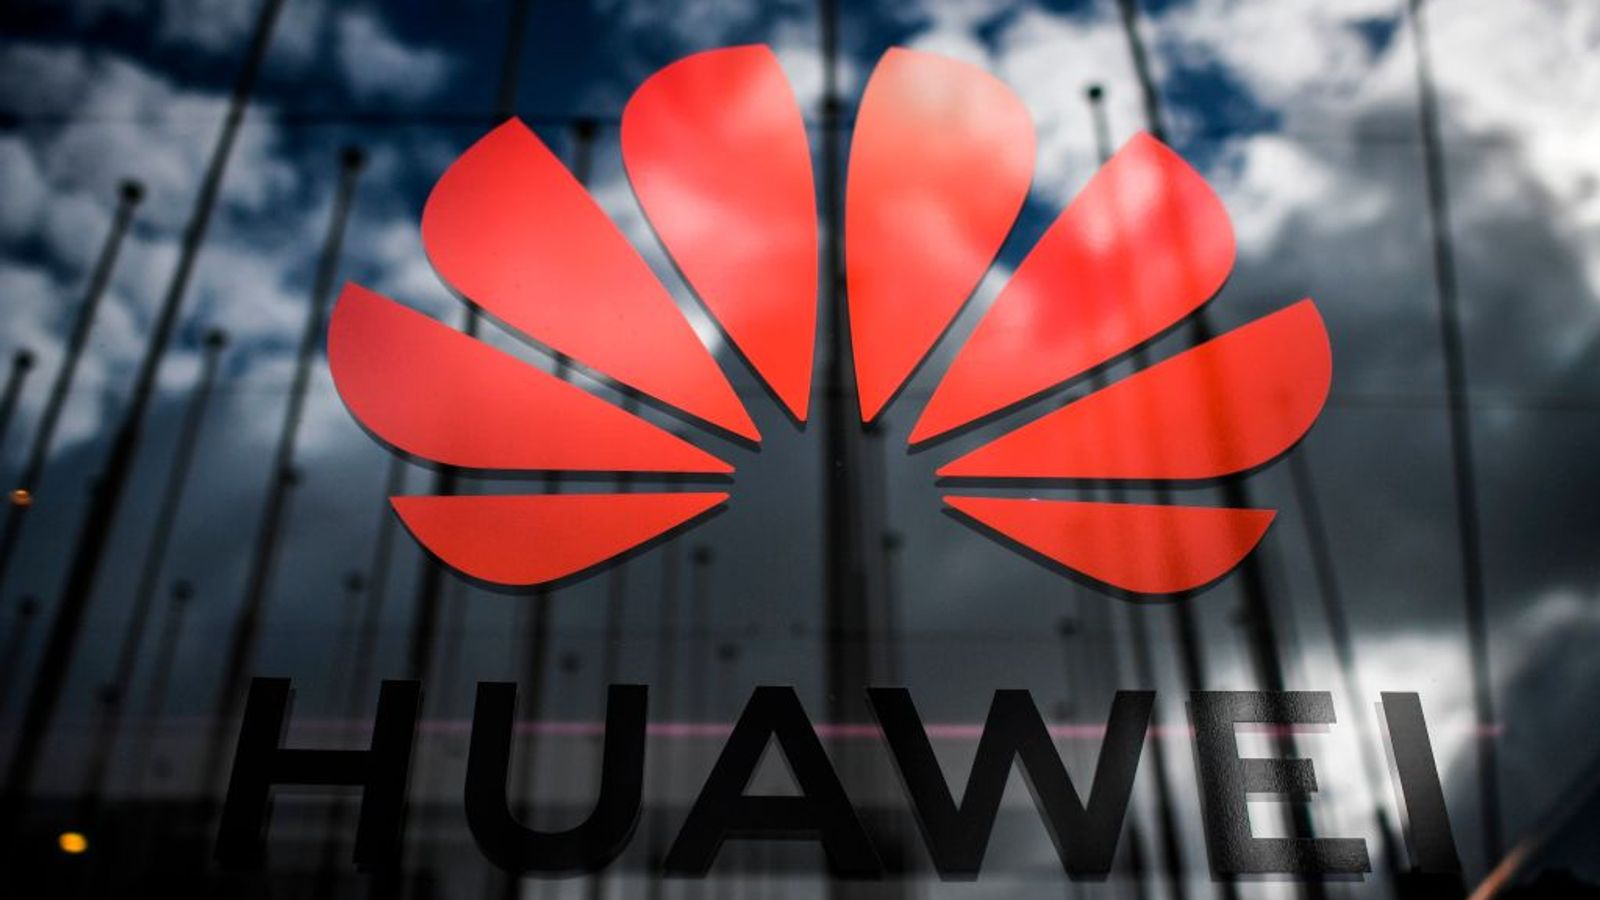 Huawei named on Pentagon list of firms backed by Chinese military | Business News